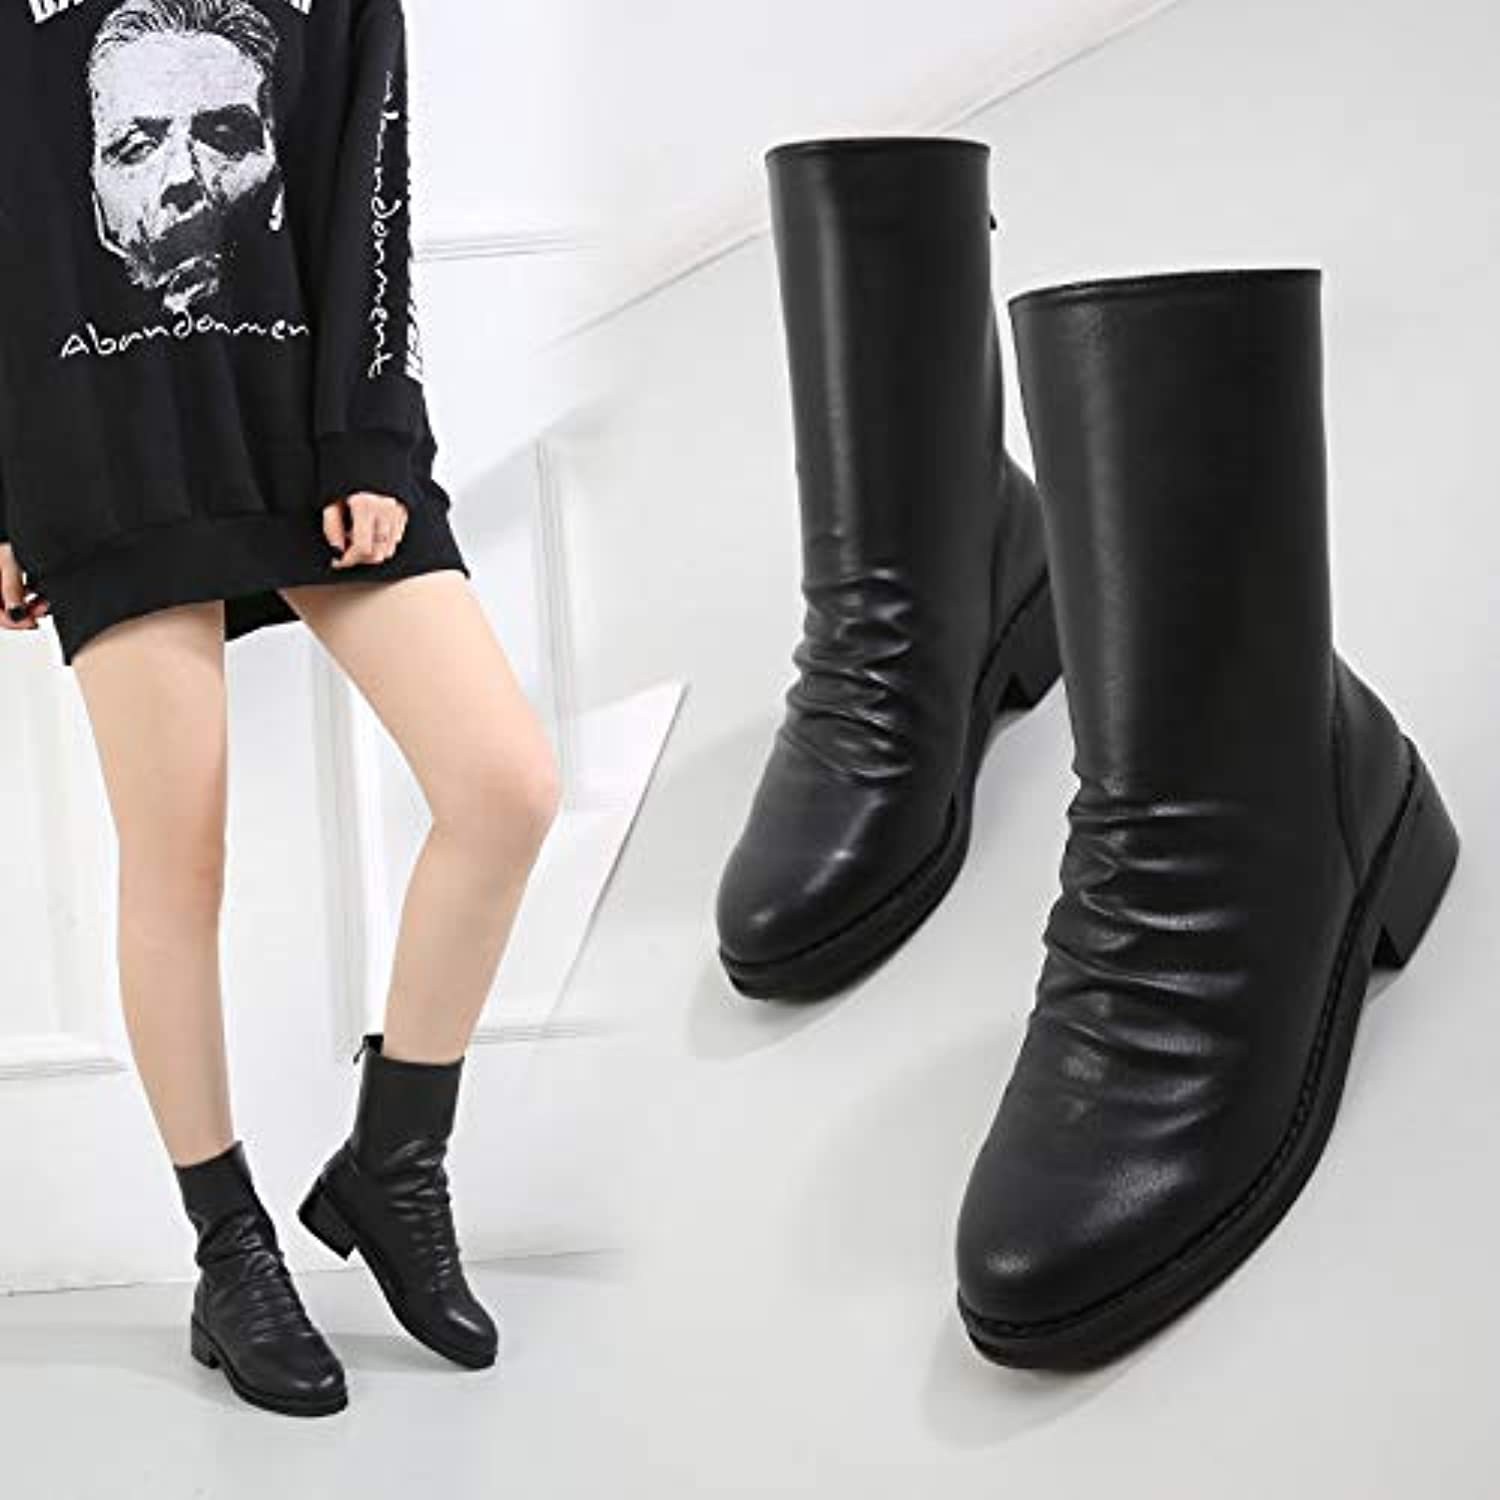 HOESCZS Boots Martin Boots Autumn and Winter New Women's Boots Thick with Short Boots Round Head Martin Boots Leather Boots Fashion Thick Boots